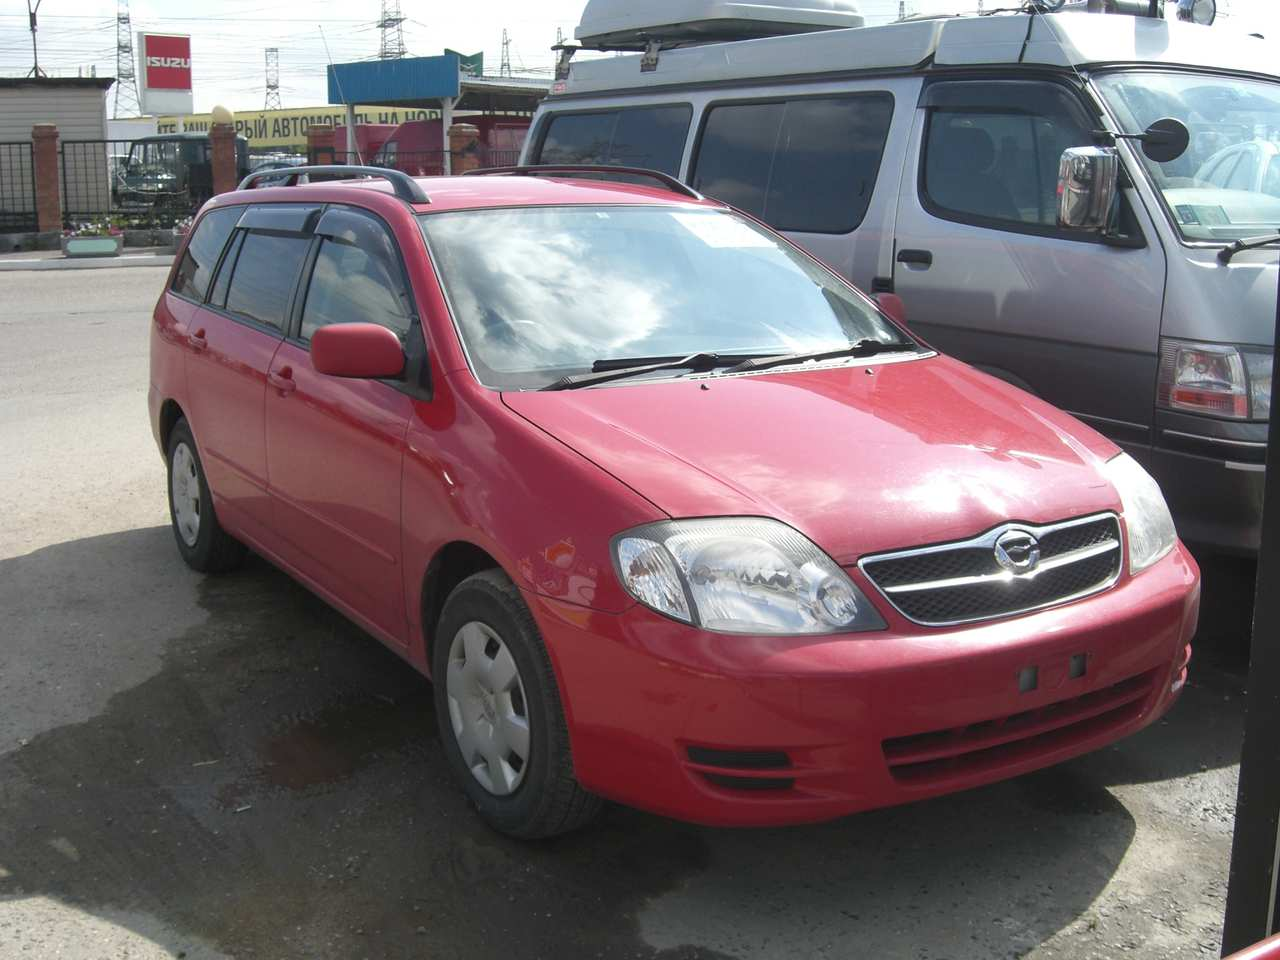 used 2002 toyota corolla fielder photos 1500cc gasoline ff automatic for sale. Black Bedroom Furniture Sets. Home Design Ideas